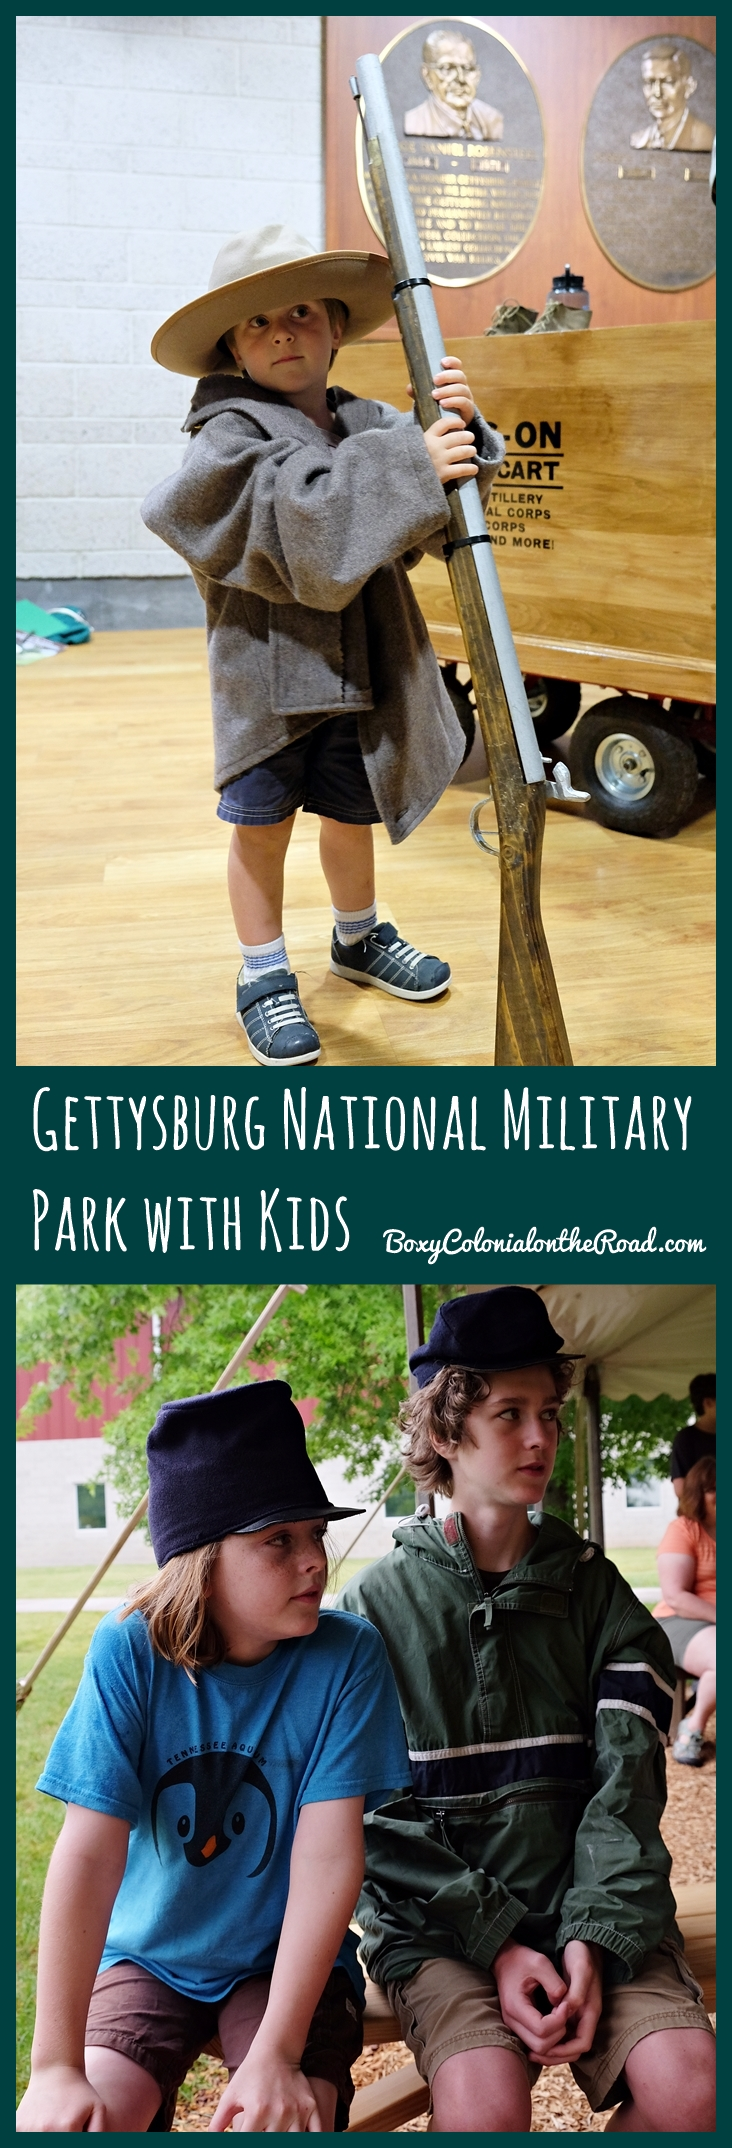 Two days in Gettysbury National Military Park with kids